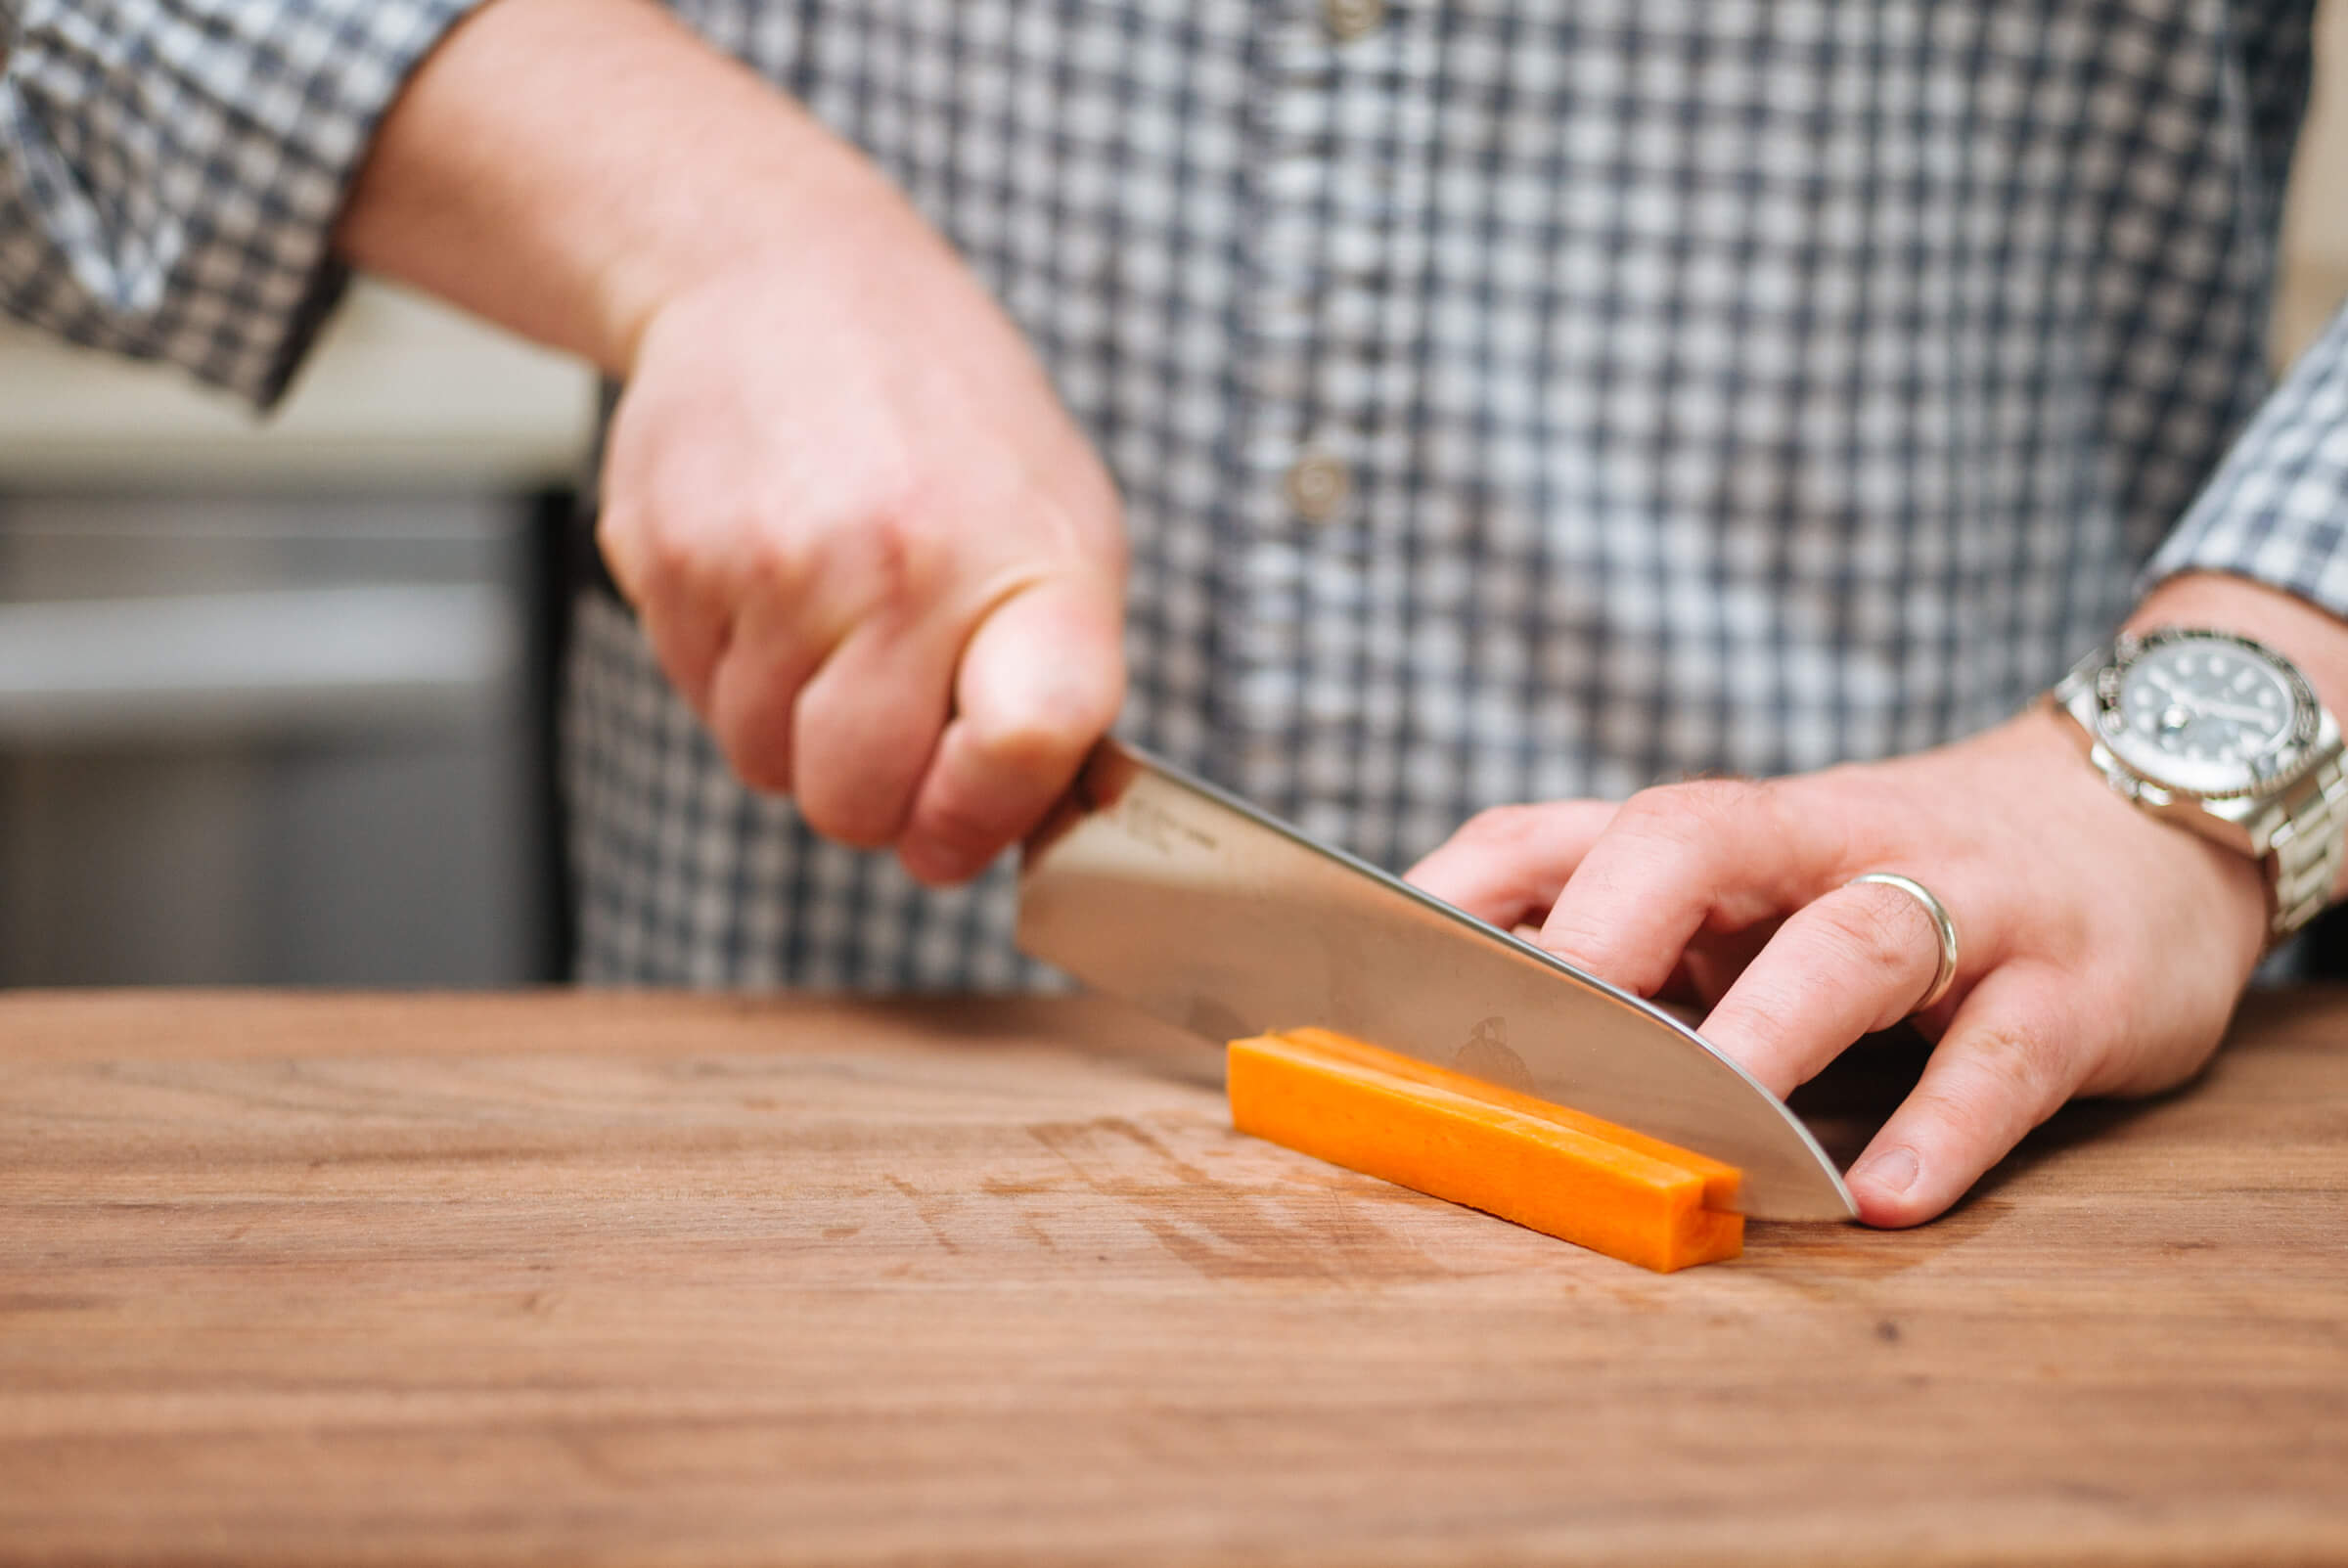 how to dice a carrot - slicing the sides off